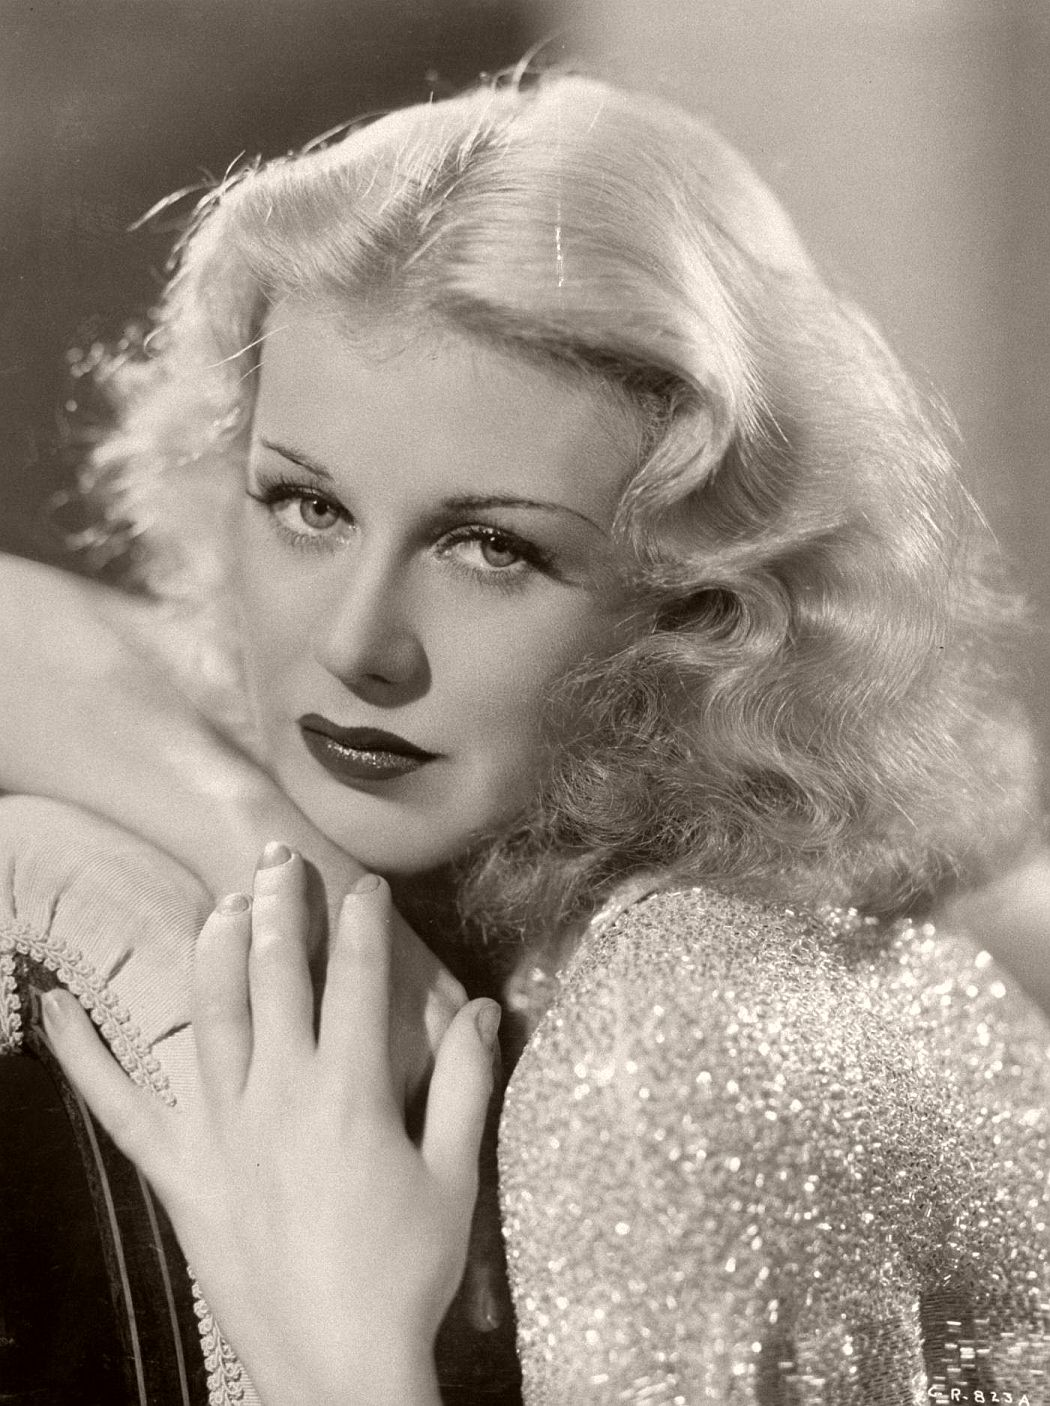 Often the dancing partner of the dapper Fred Astaire in films, Ginger was known for her constantly changing hair. Straight, wavy, sleek bobs and classic up-dos; Ginger wore them all. She left her distinct mark on 1930s fashion with her super sleek gowns, which showed off her enviable figure as well as her dancing sills.